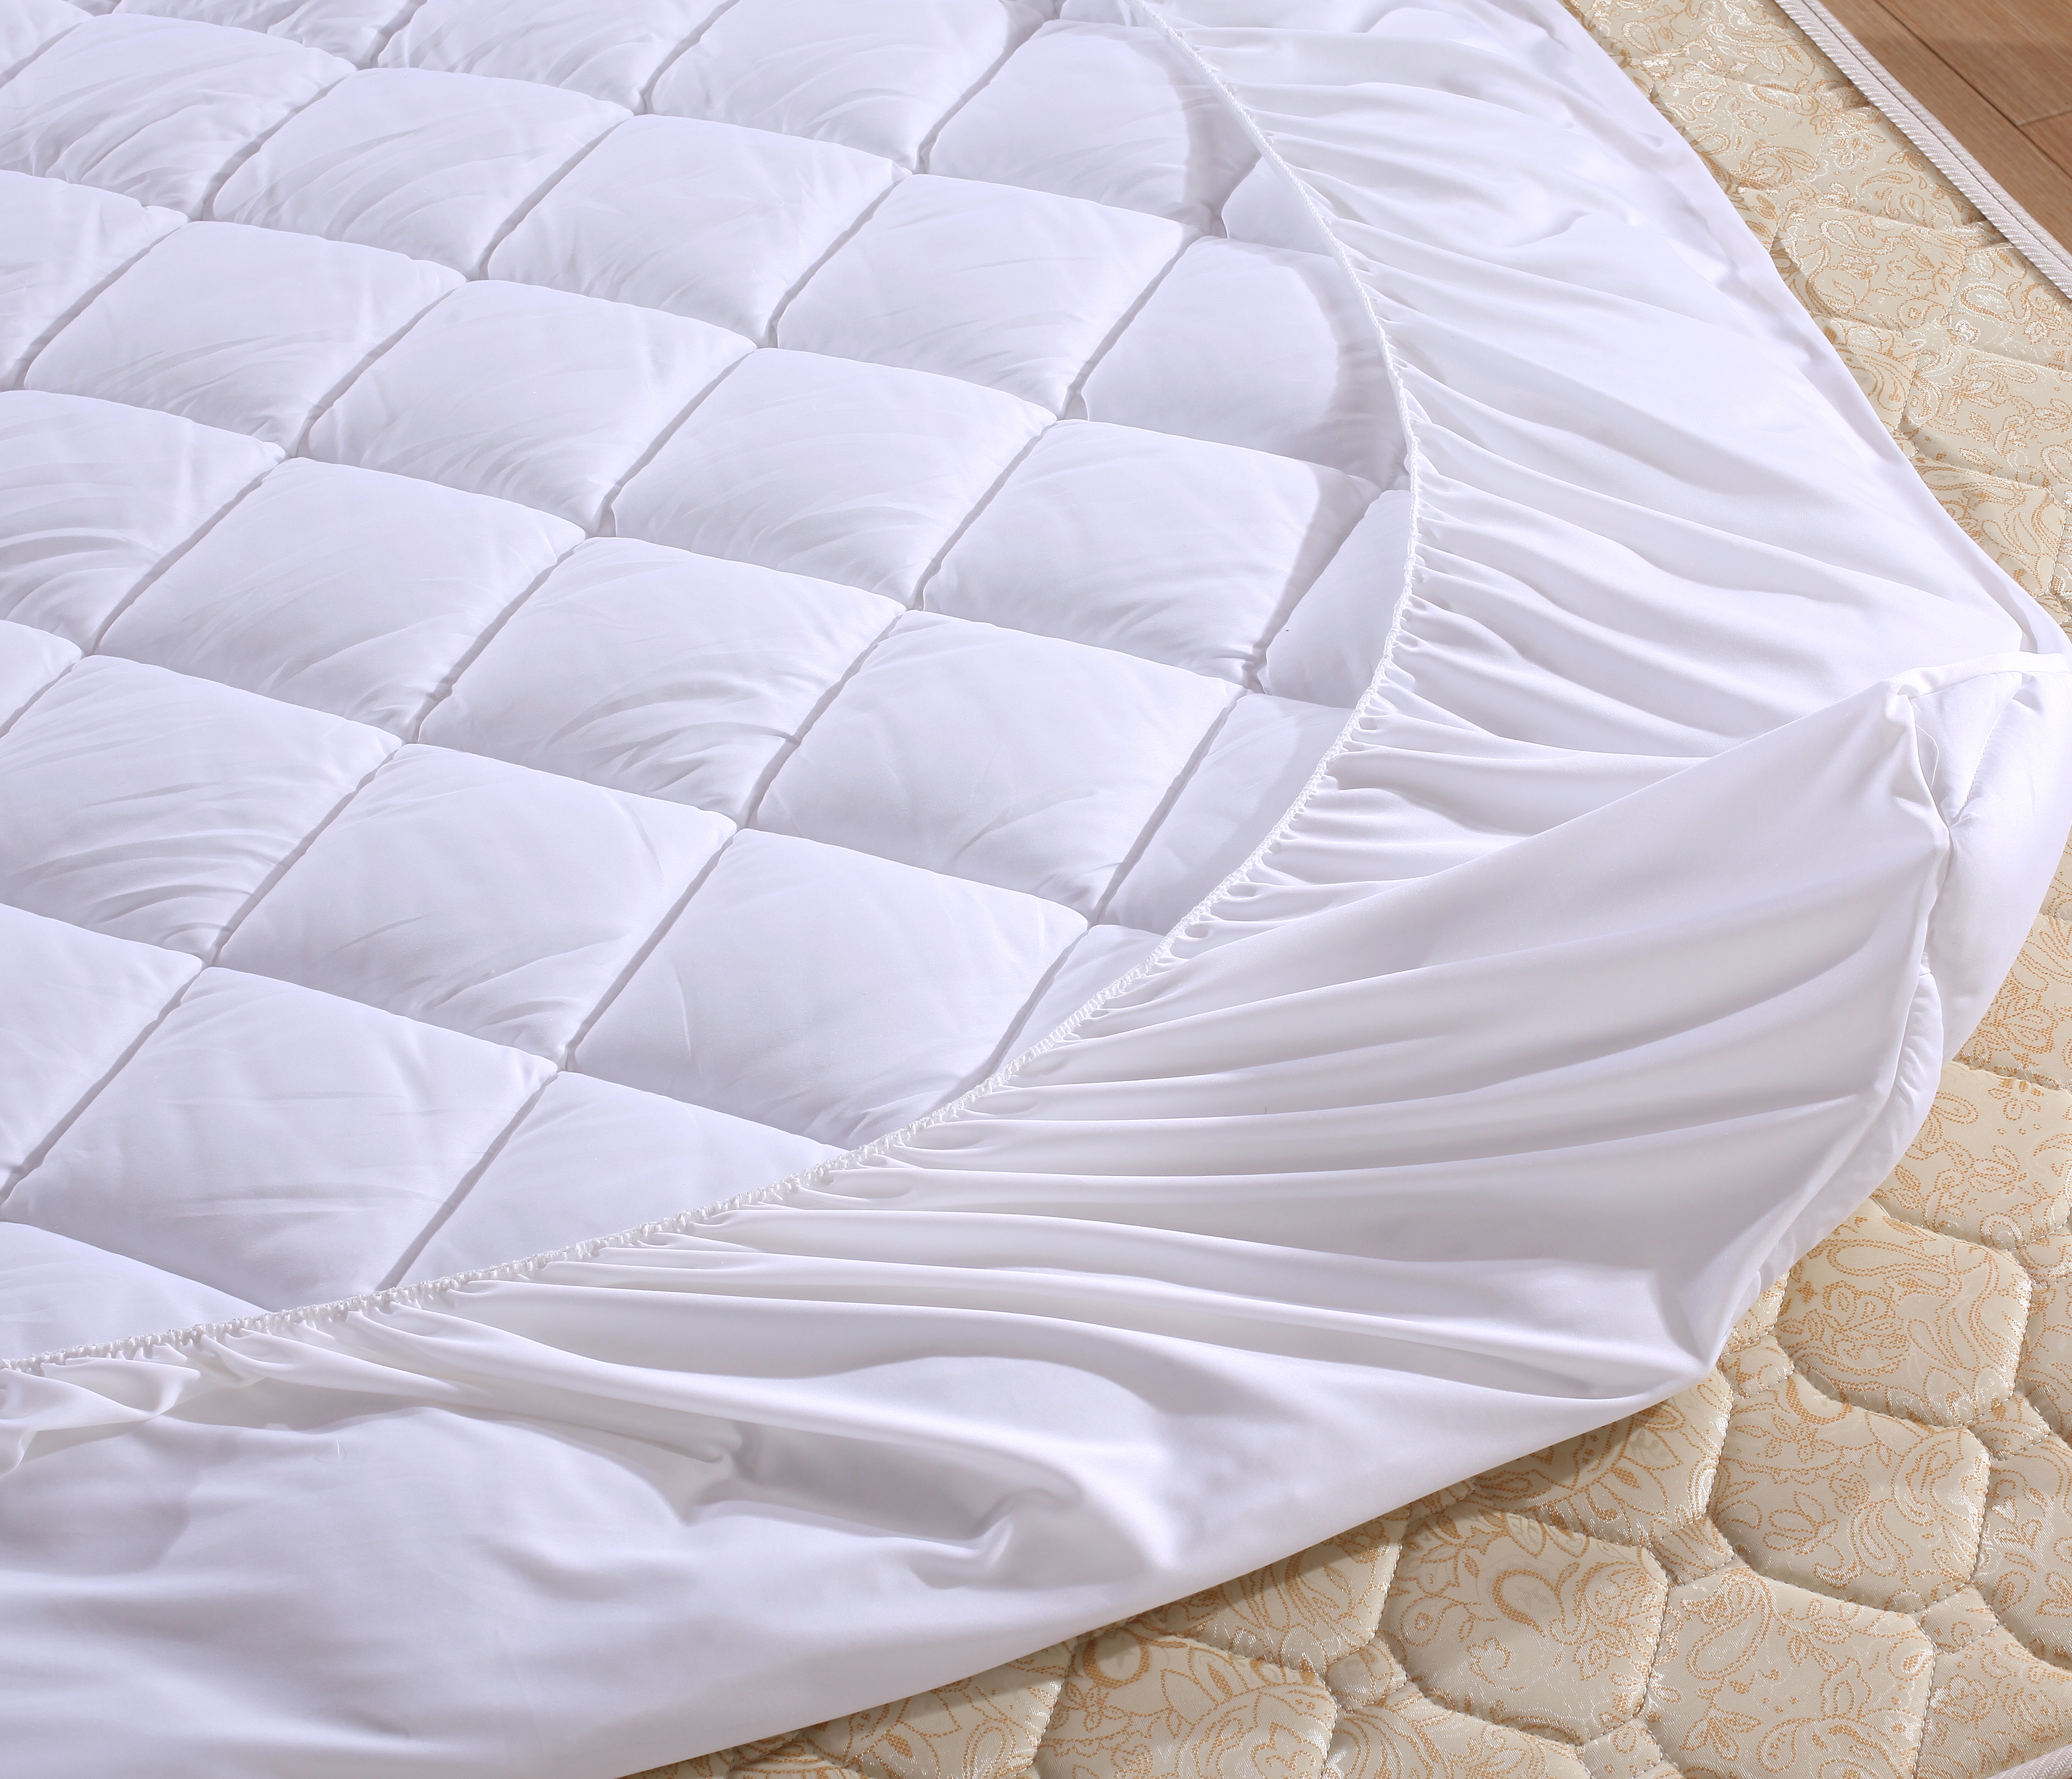 index mattress cotton detail bed toppers protector protectors pillow